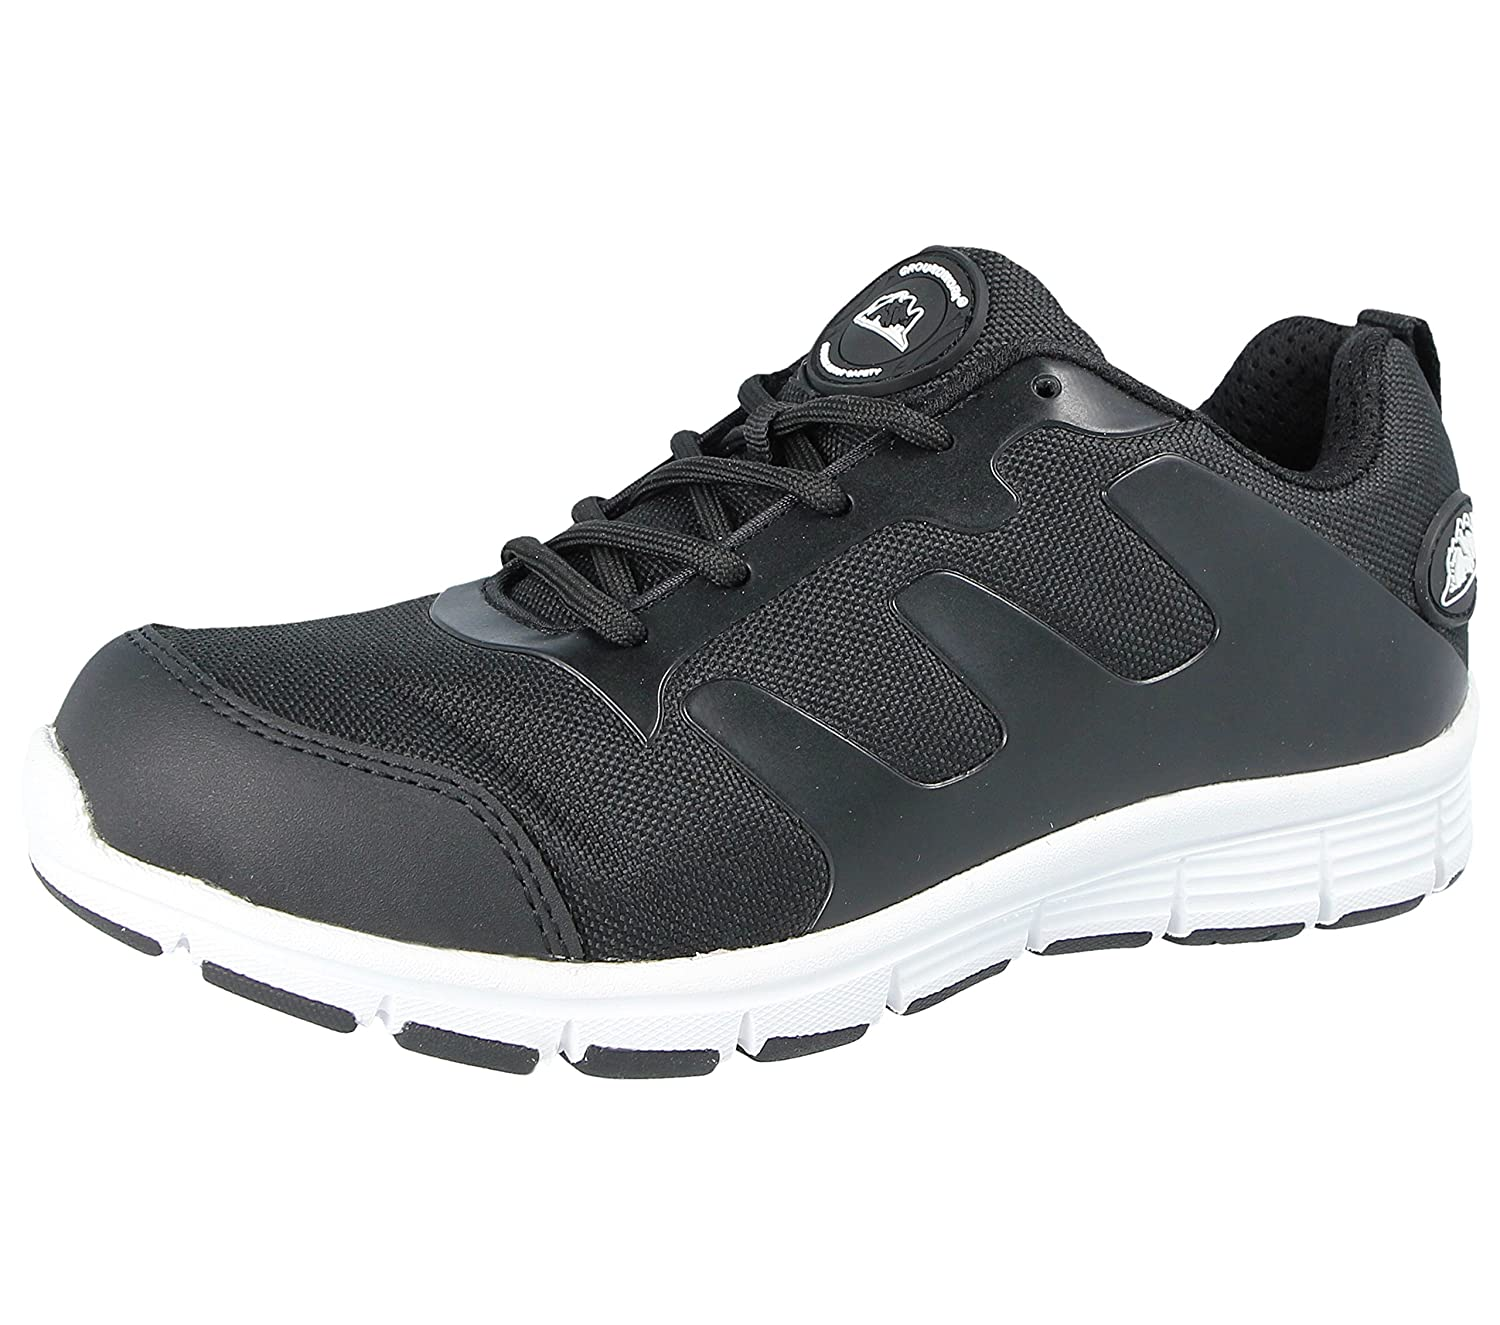 Groundwork Gr95, Zapatillas de Seguridad Unisex Adulto